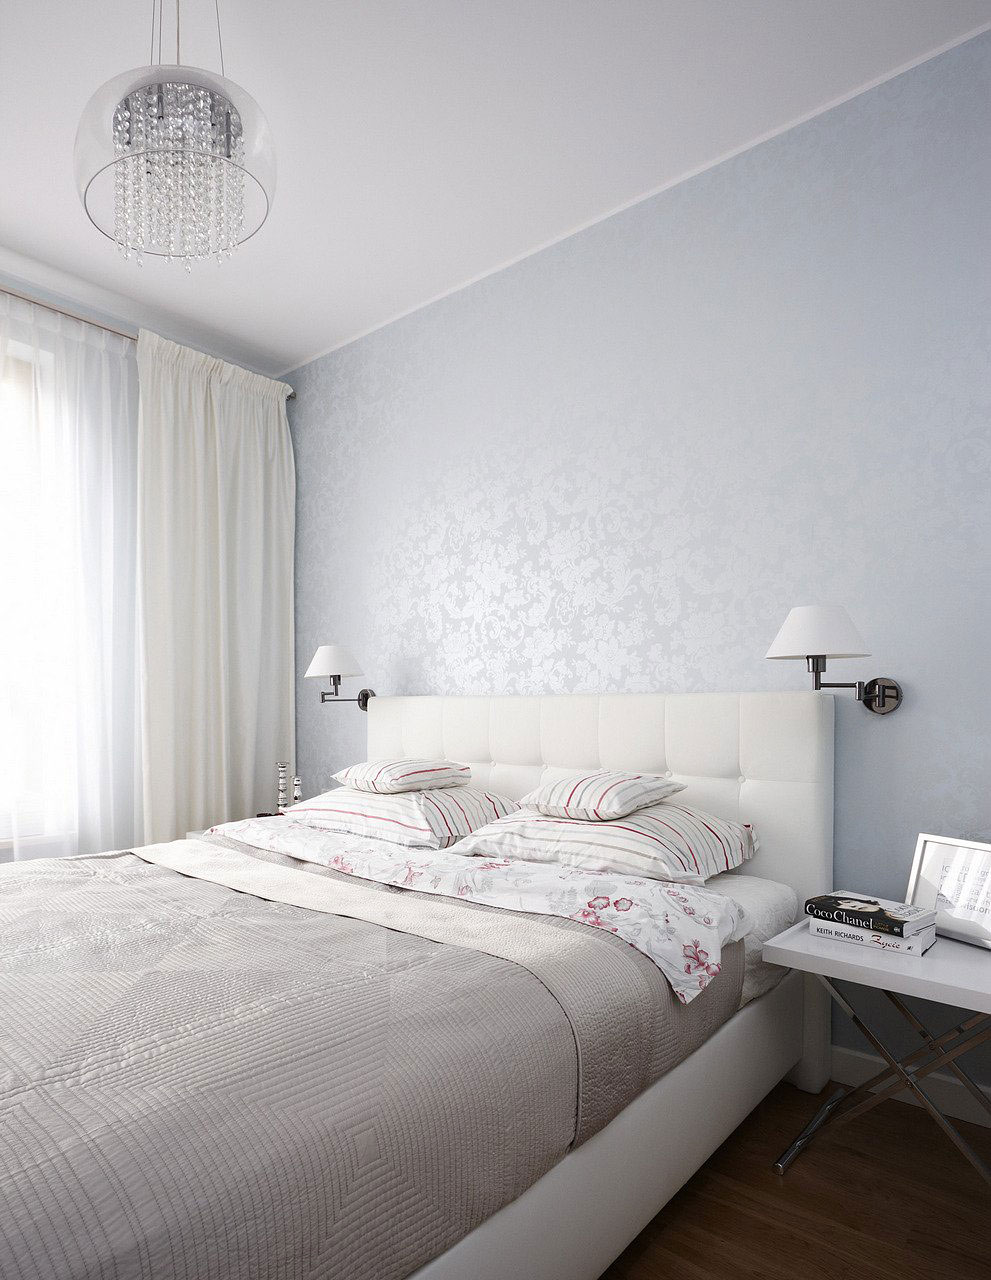 Http Www Home Designing Com 2012 10 Vivacious Polish Apartment White Bedroom 5